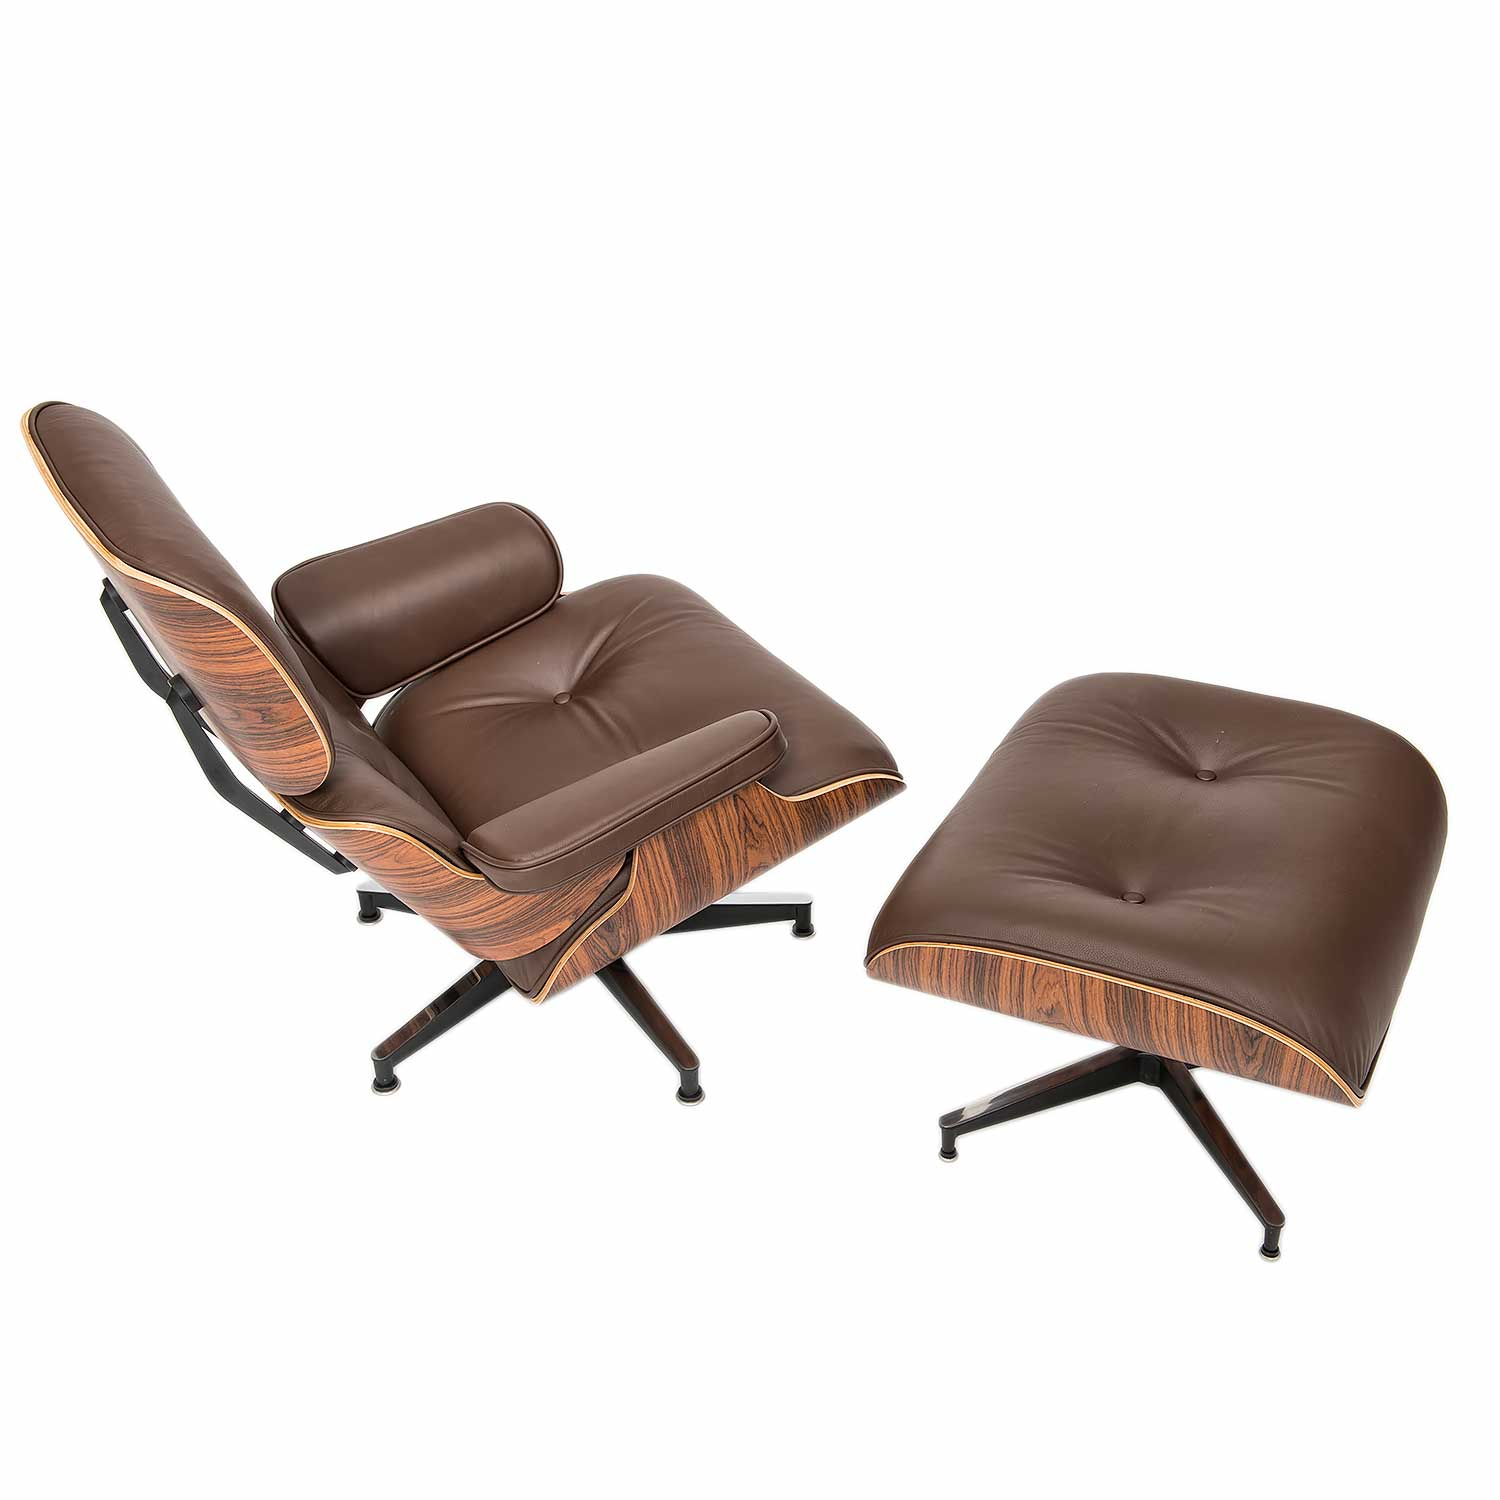 Eames designed Lounge Chair with Ottoman